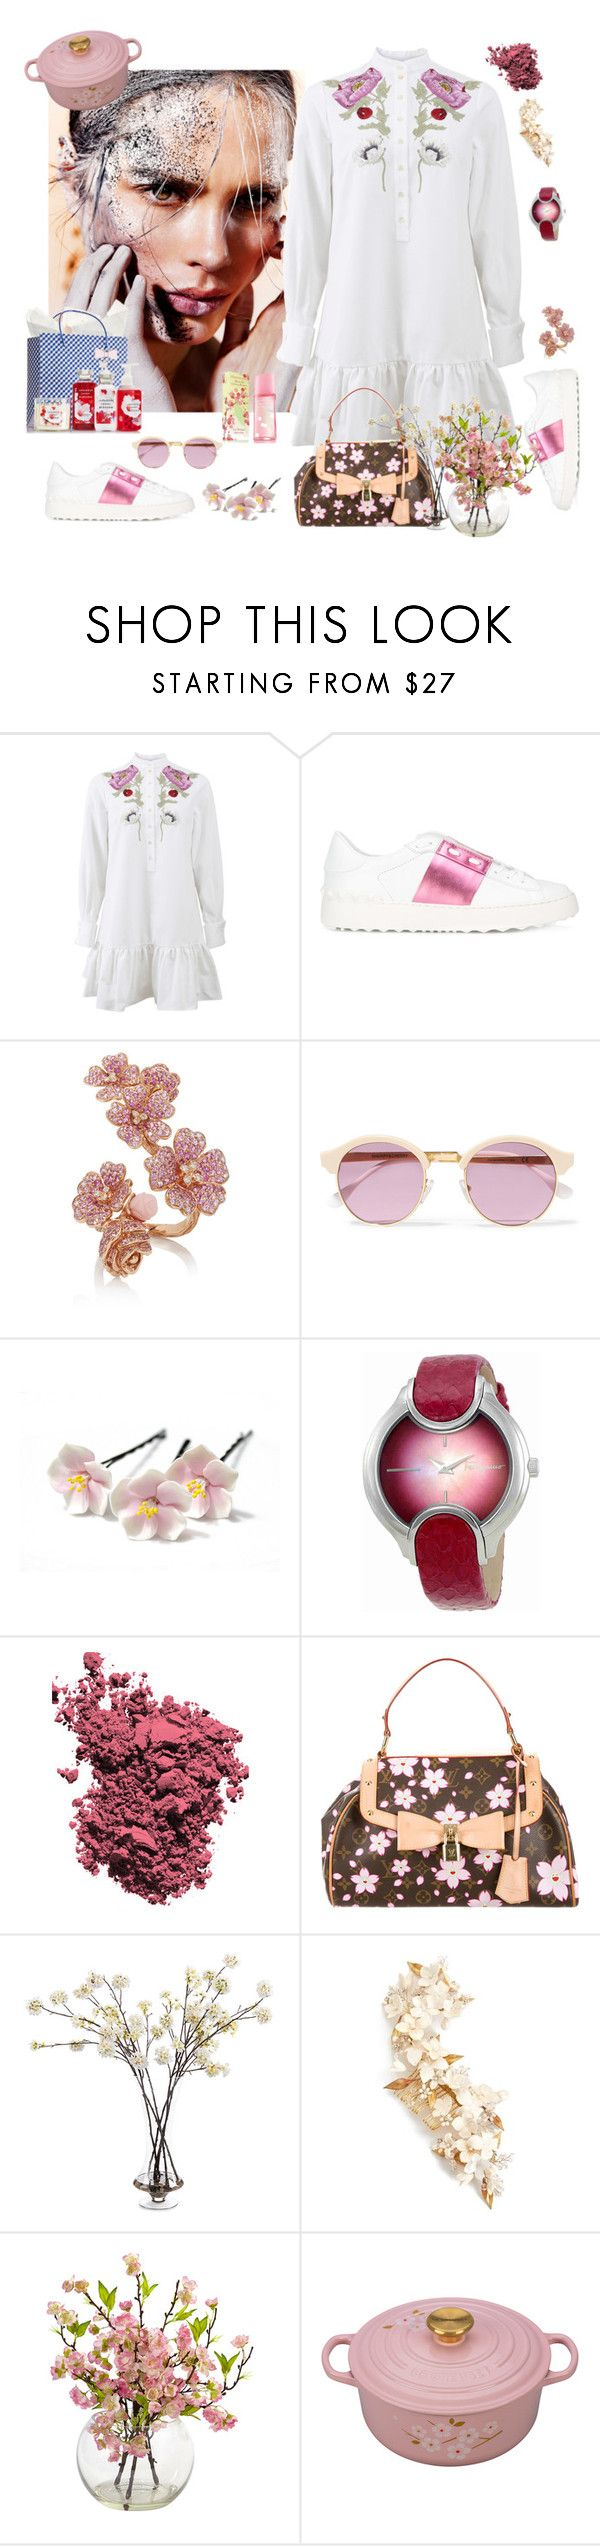 """""""CHERRY SPRINGer"""" by juliabachmann ❤ liked on Polyvore featuring Alexander McQueen, Valentino, Sheriff&Cherry, Salvatore Ferragamo, Elizabeth Arden, Christian Dior, Louis Vuitton, John-Richard, Twigs & Honey and Nearly Natural"""